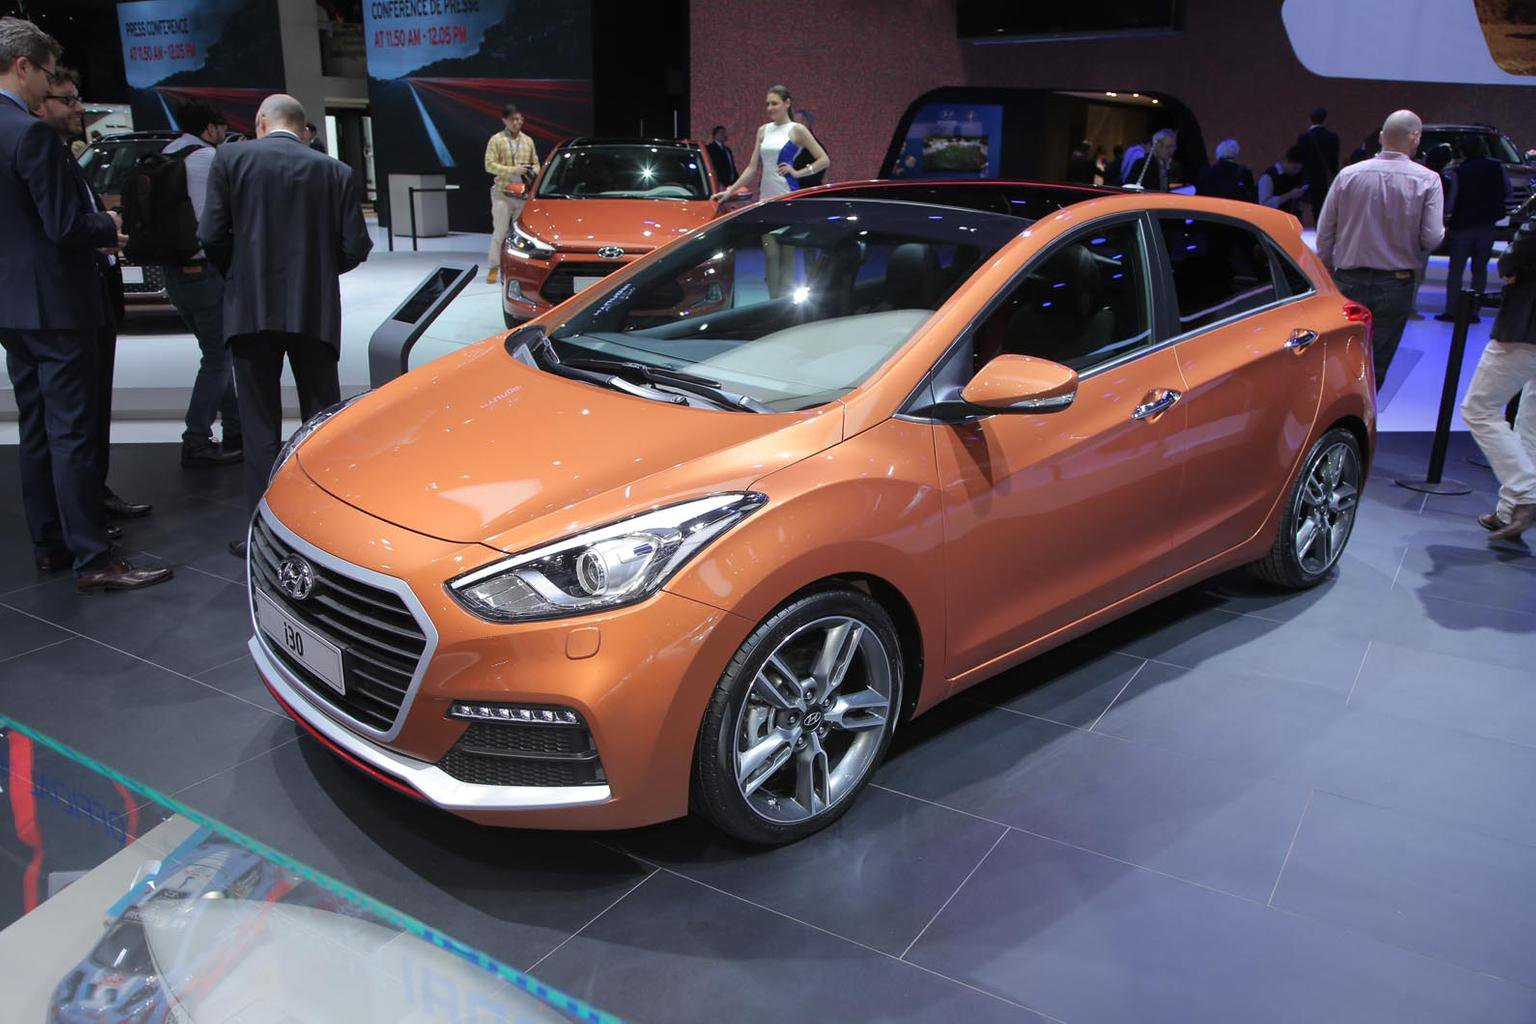 2015 Hyundai i30 face-lift - prices, engines, spec and release date